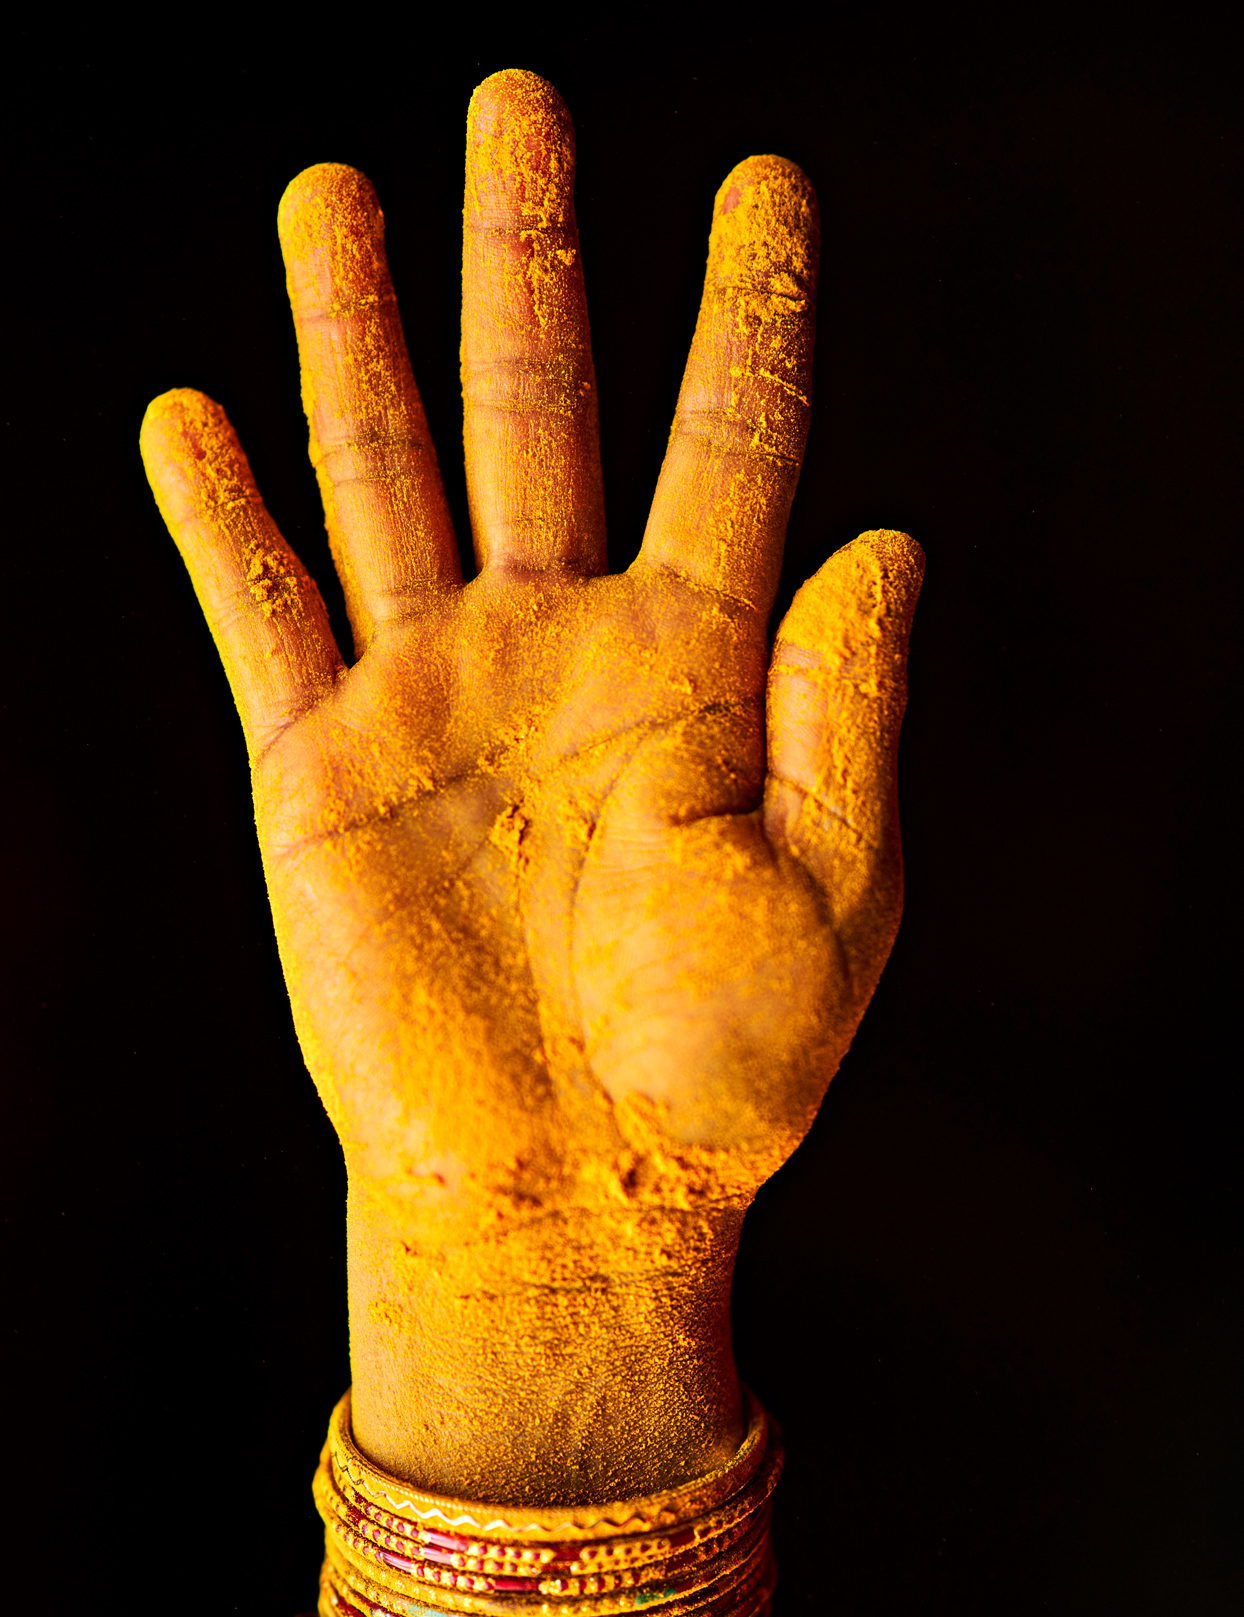 hand covered in turmeric powder